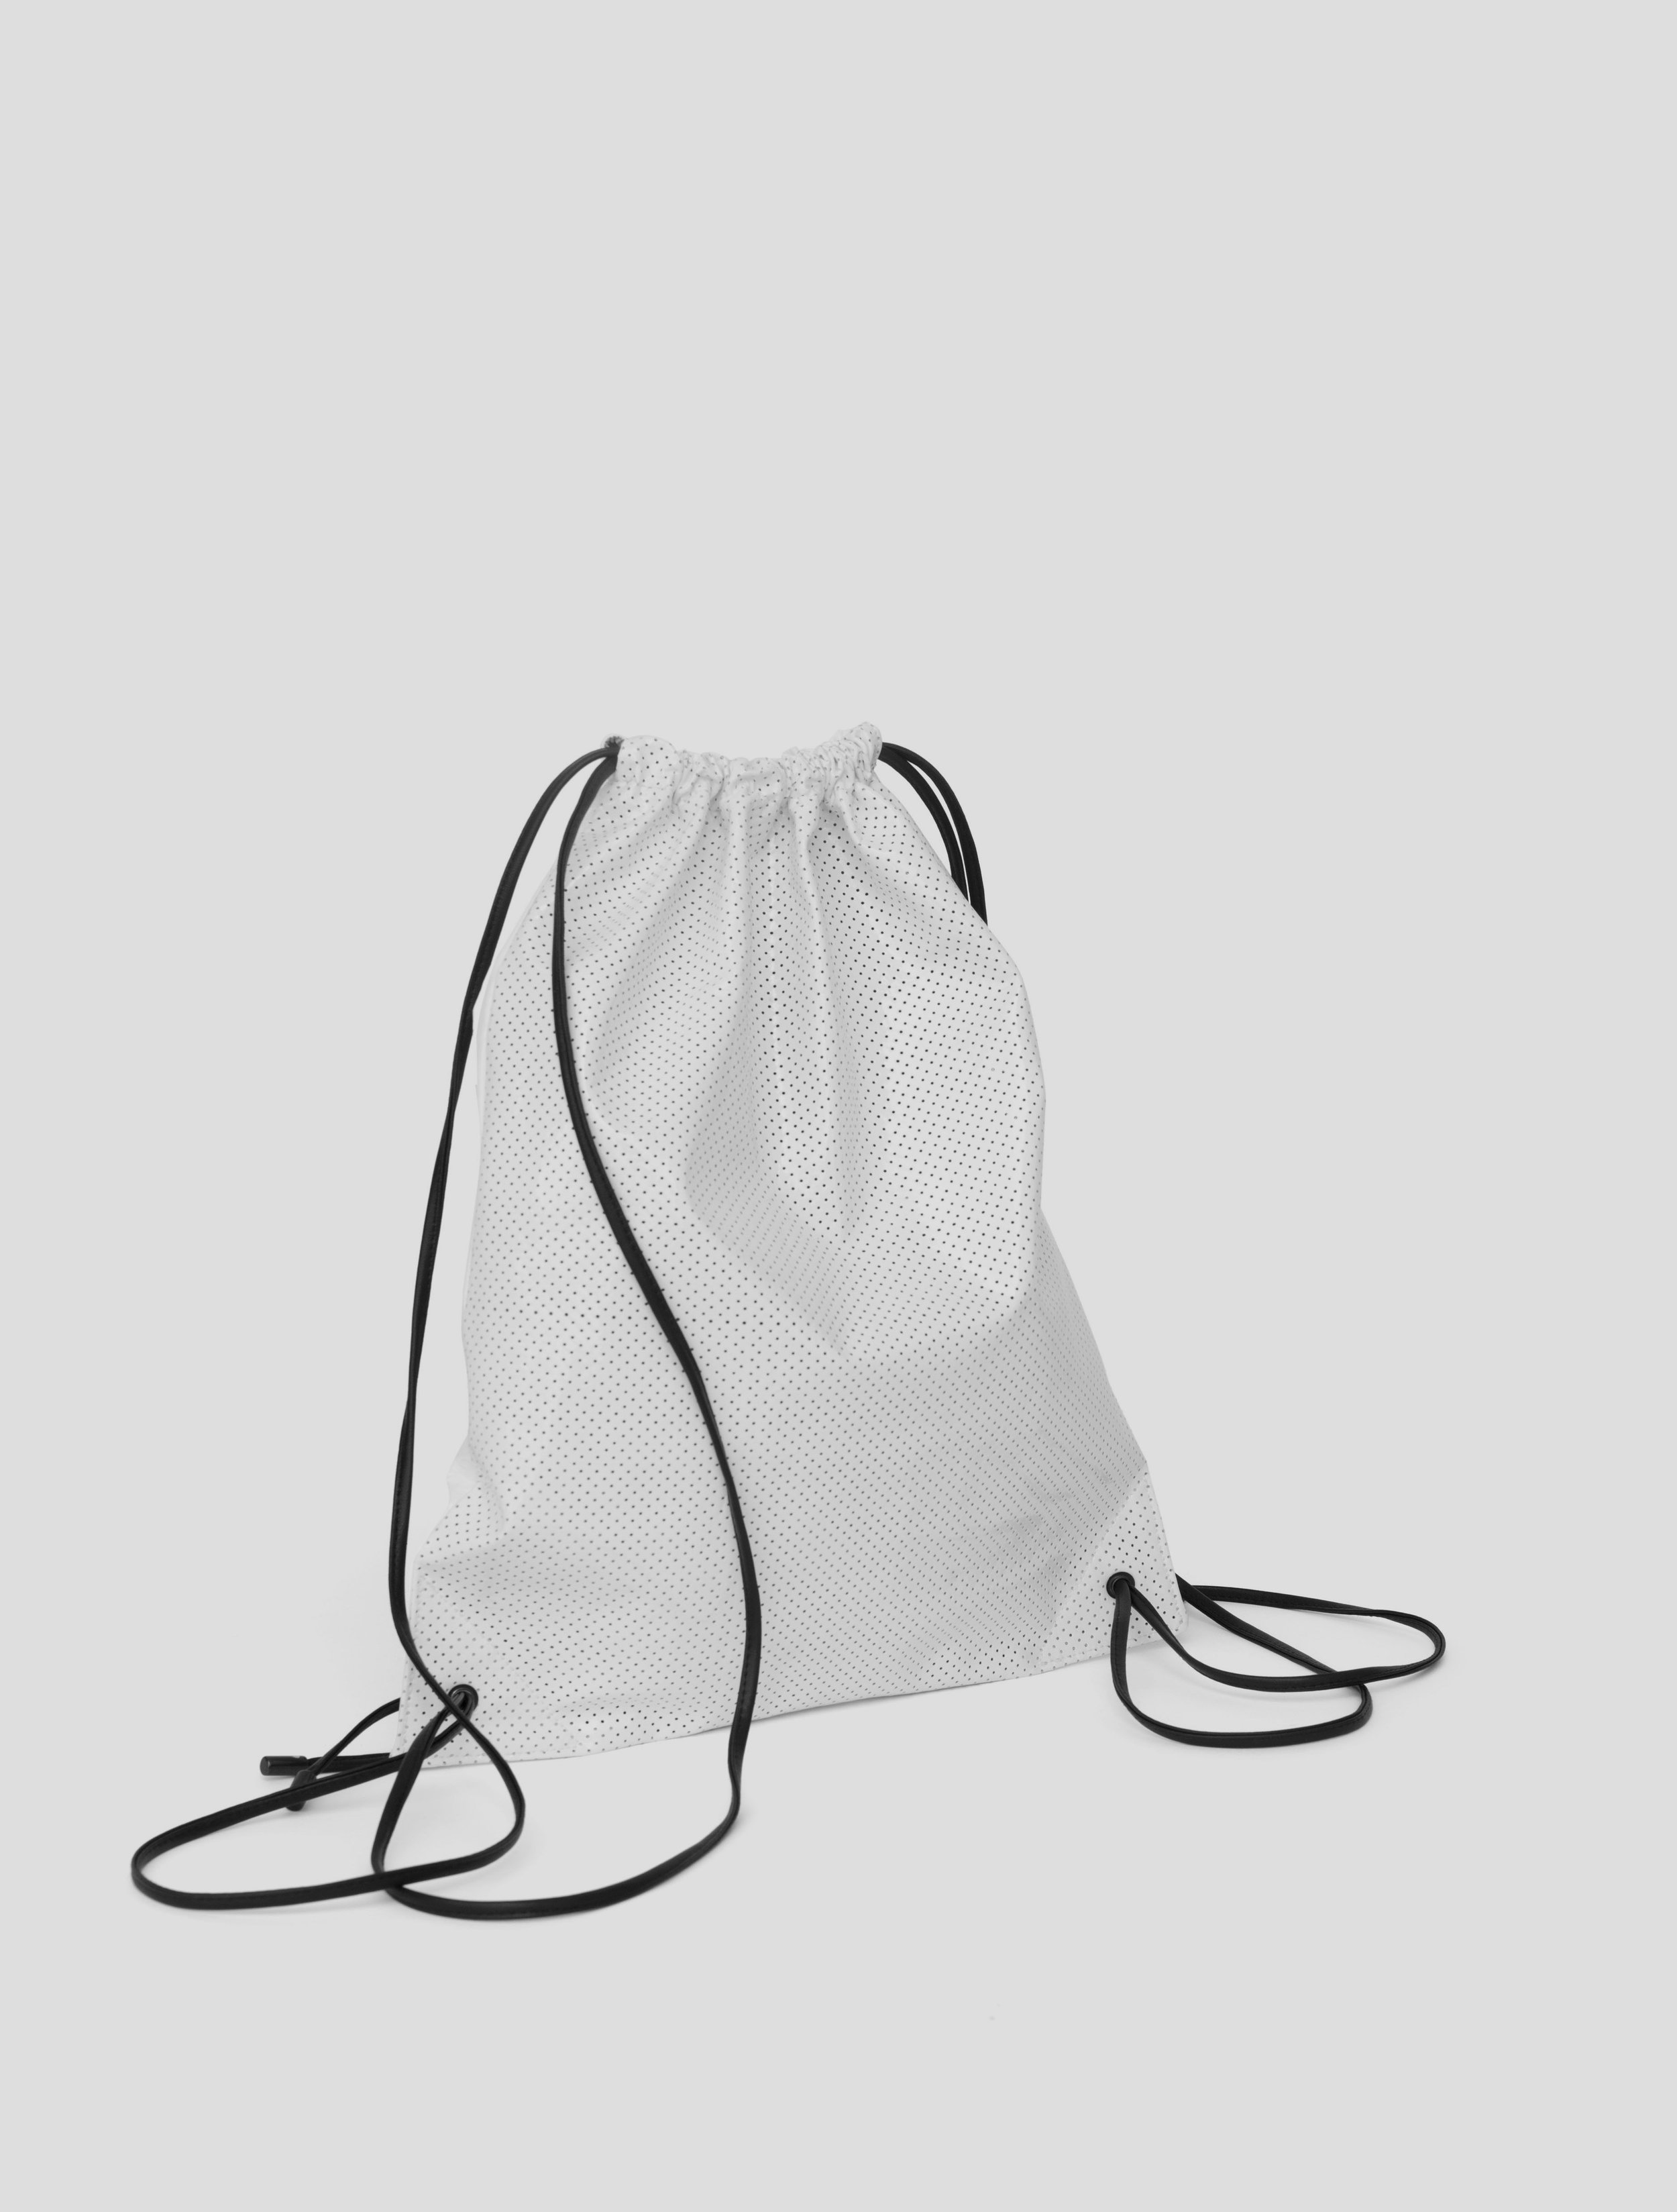 DRAWSTRING WHITE PERFORATED BACK.jpg